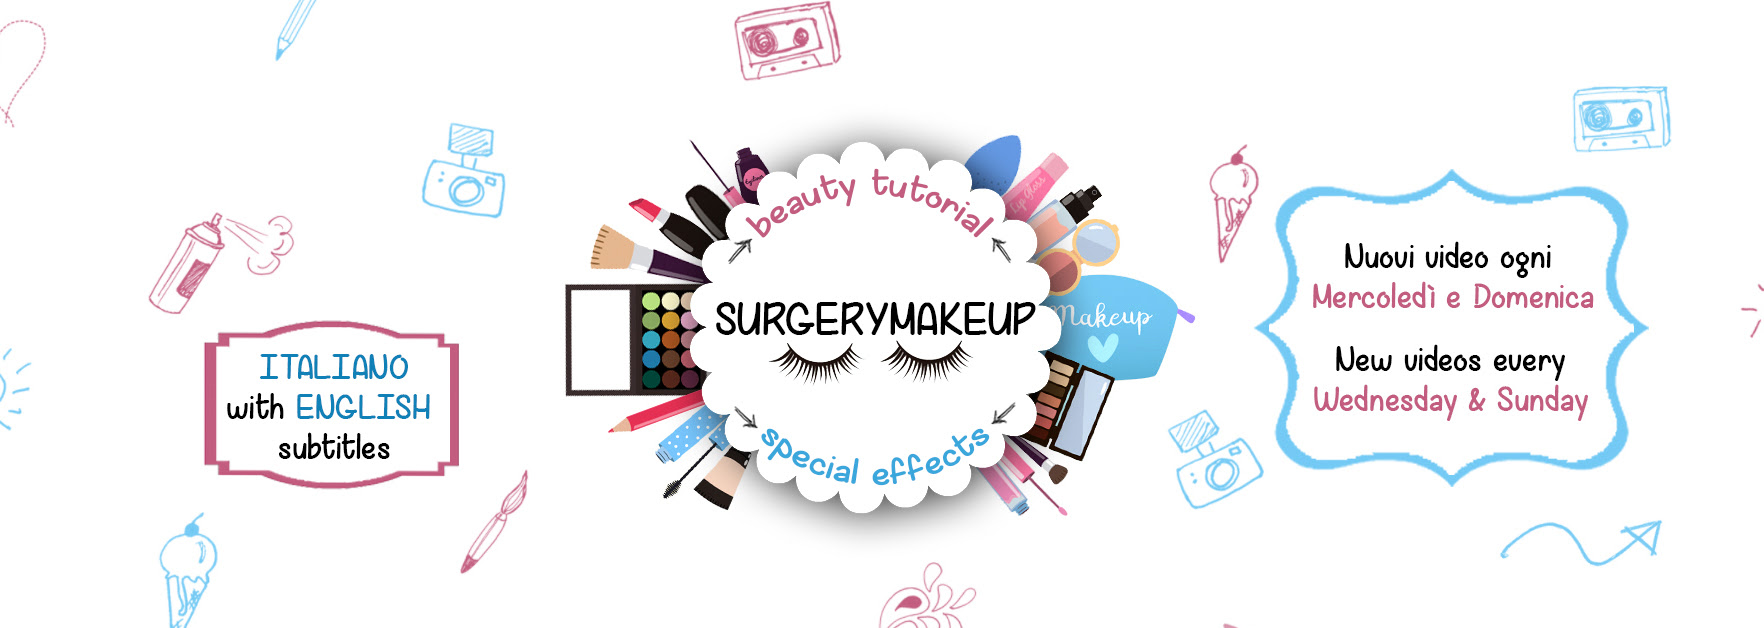 Canale Youtube Surgerymakeup: Beauty tutorial ed effetti speciali